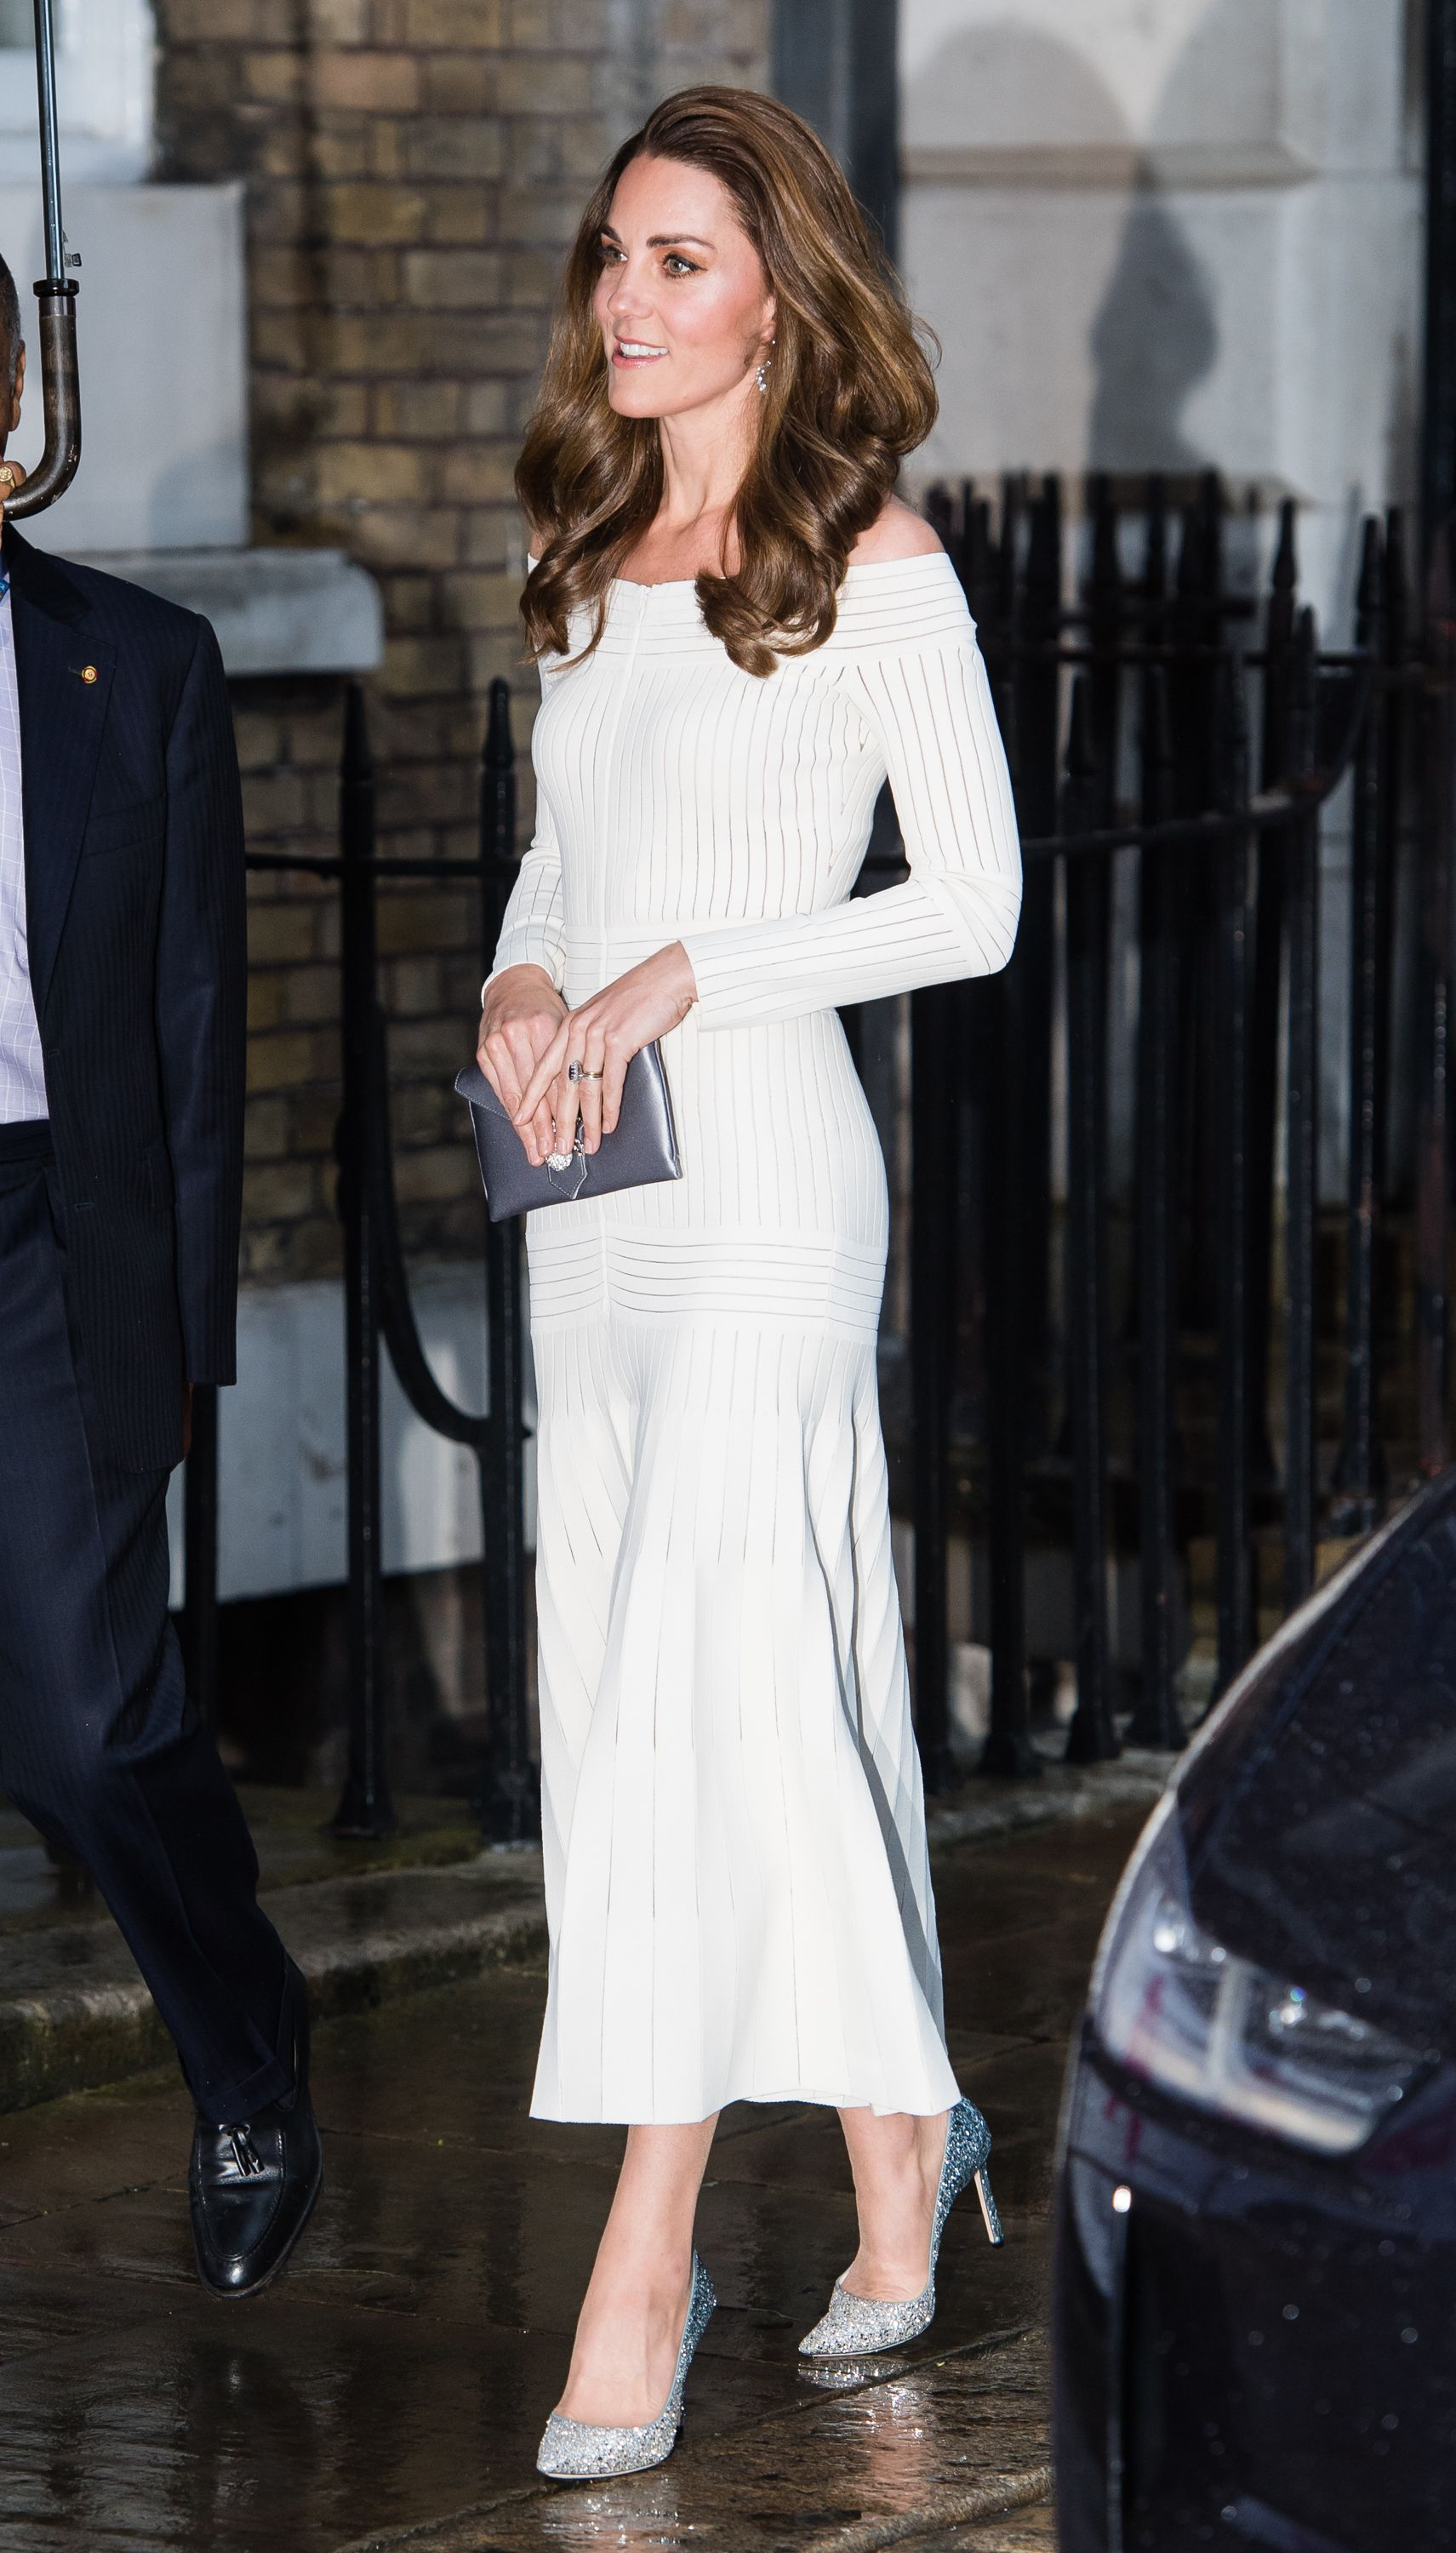 20d9721bcef46 Kate Middleton's Best Fashion Looks - Duchess of Cambridge's Chic Outfits